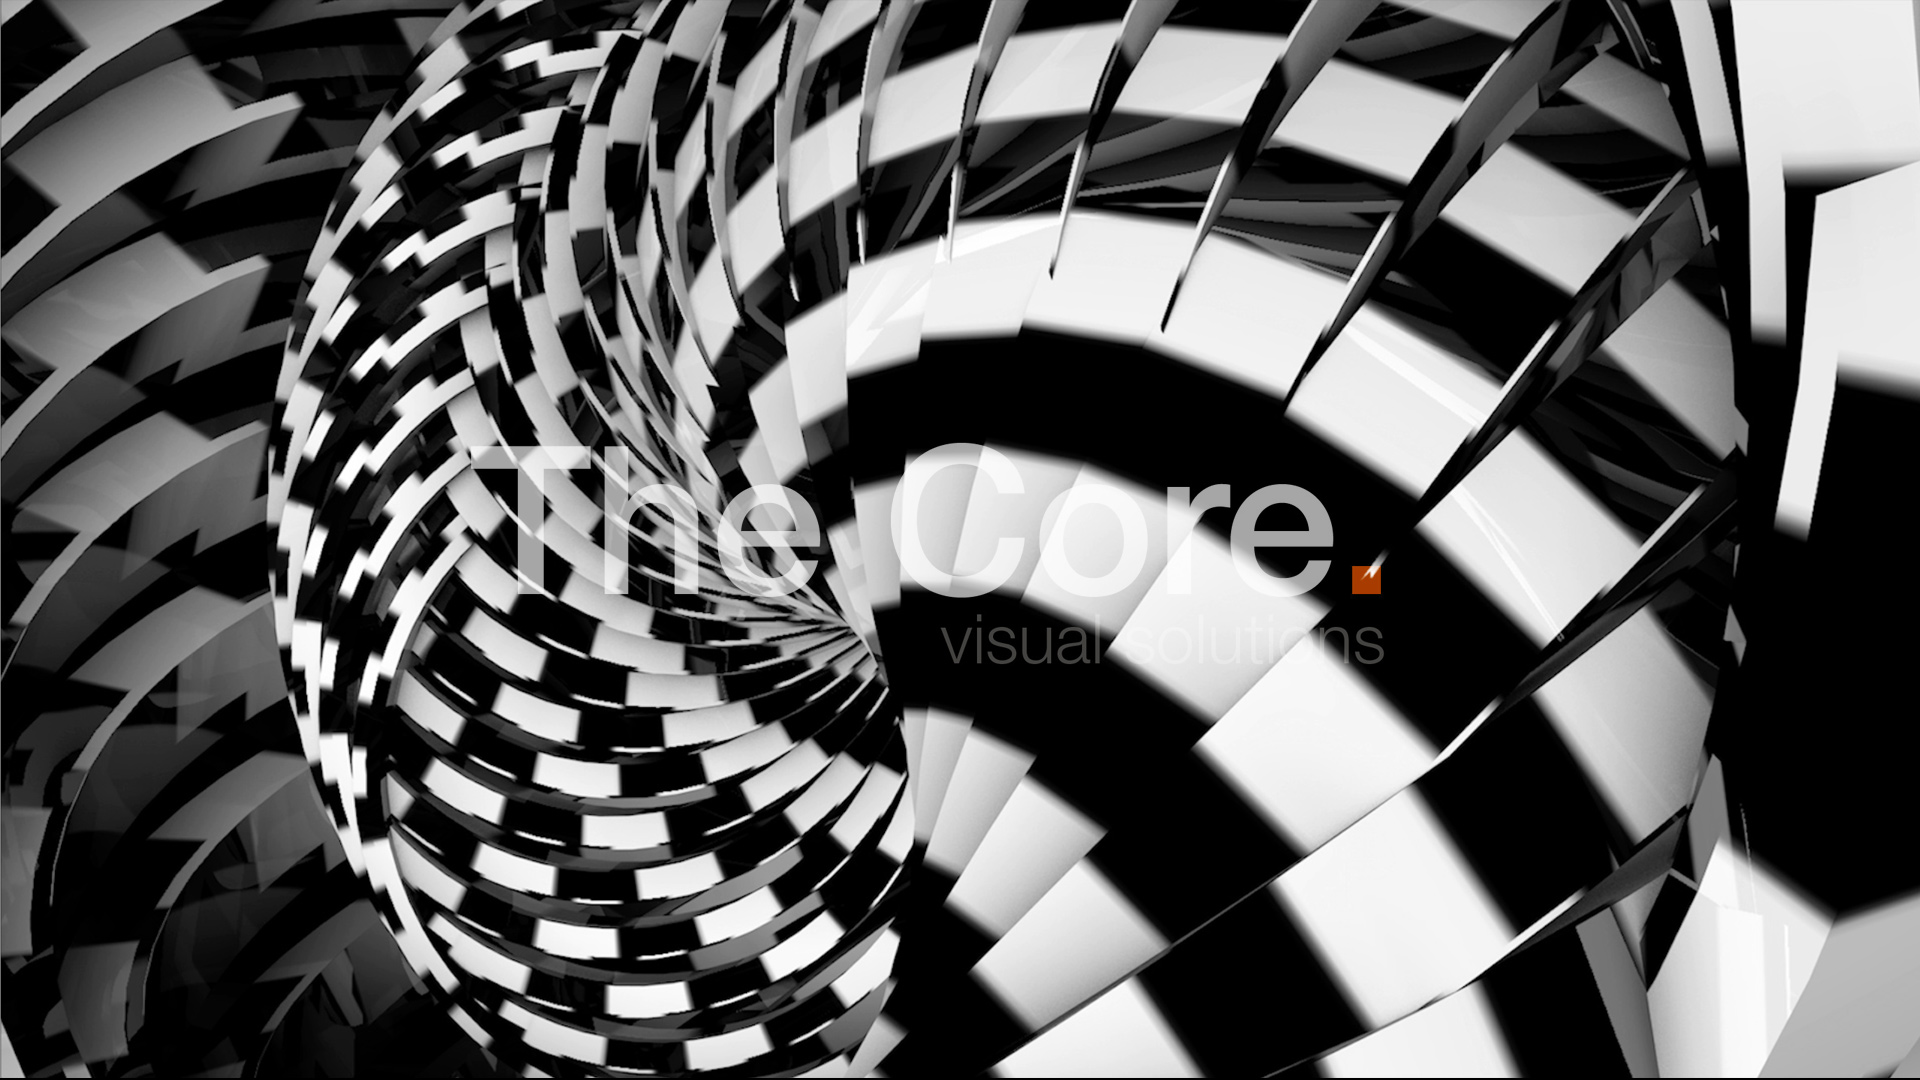 00119-ROTORSHELL-CLOSUP-BW-1-STILL-by-The-Core